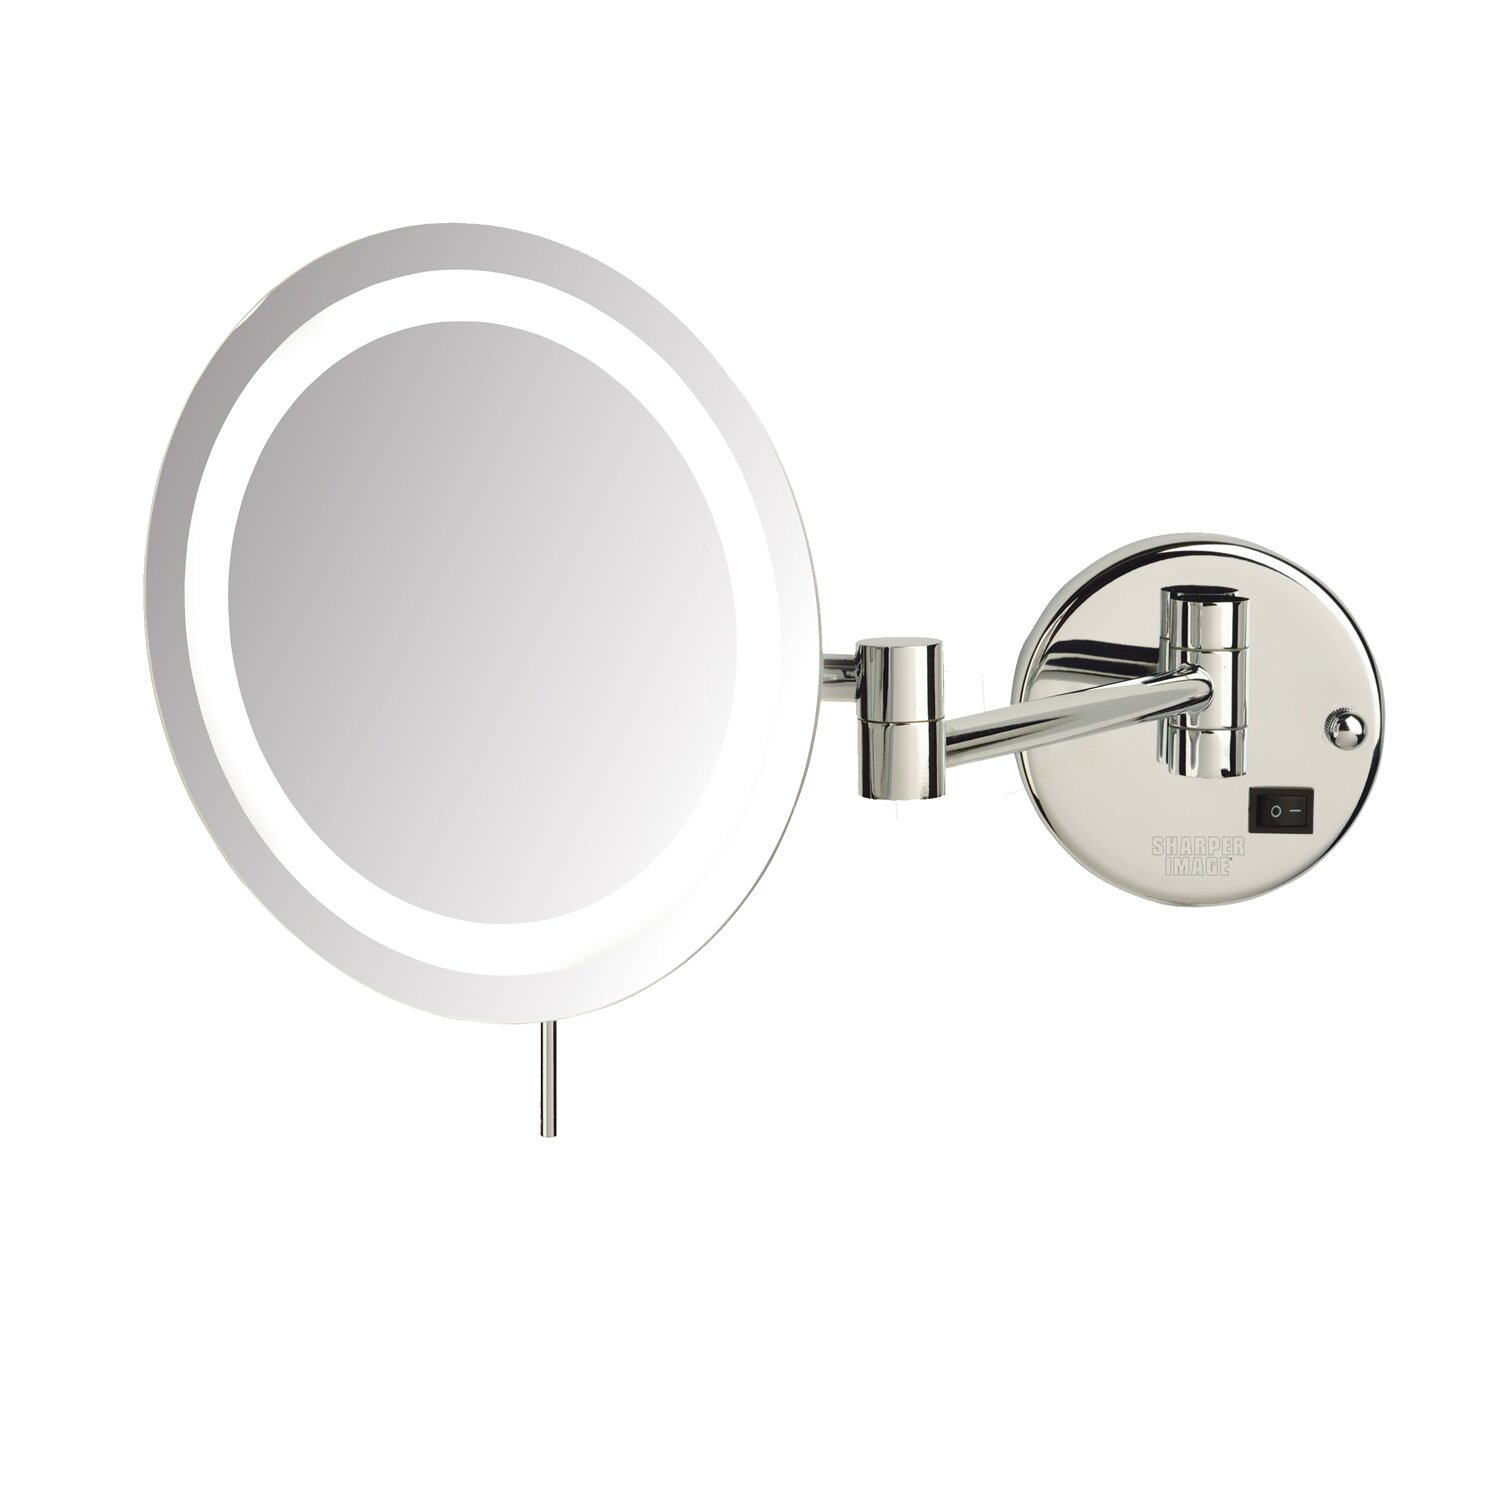 Makeup ideas wall mount makeup mirror beautiful makeup ideas makeup ideas wall mount makeup mirror jerdon led 8x magnifying wall mount makeup mirror u0026 amipublicfo Image collections